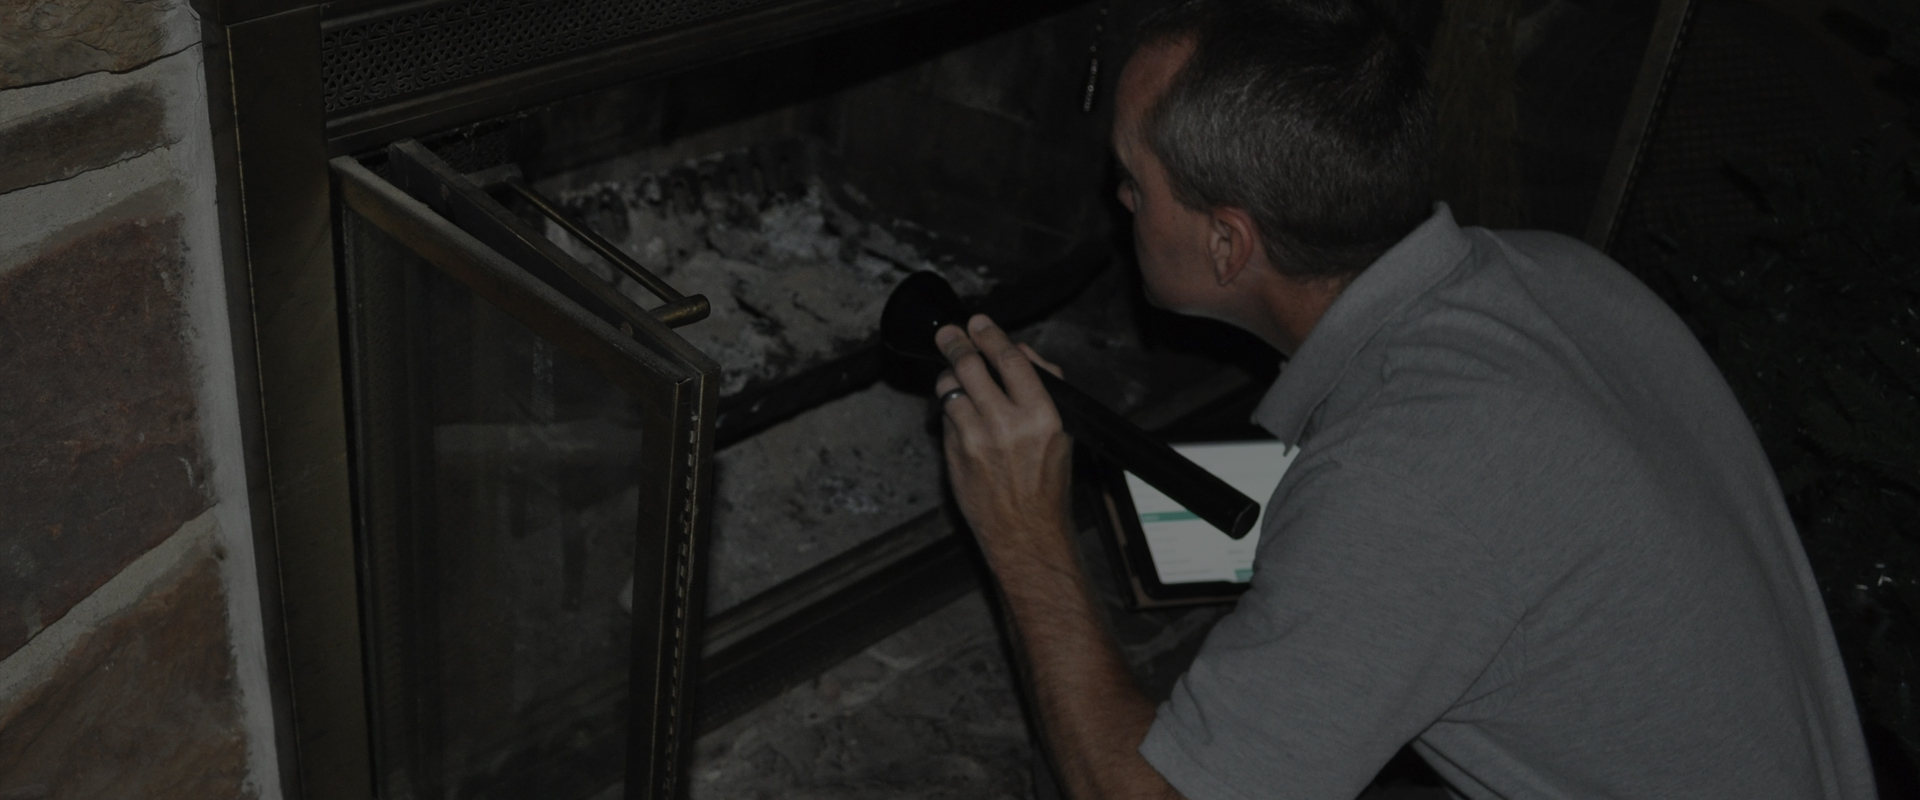 Scott inspecting fireplace